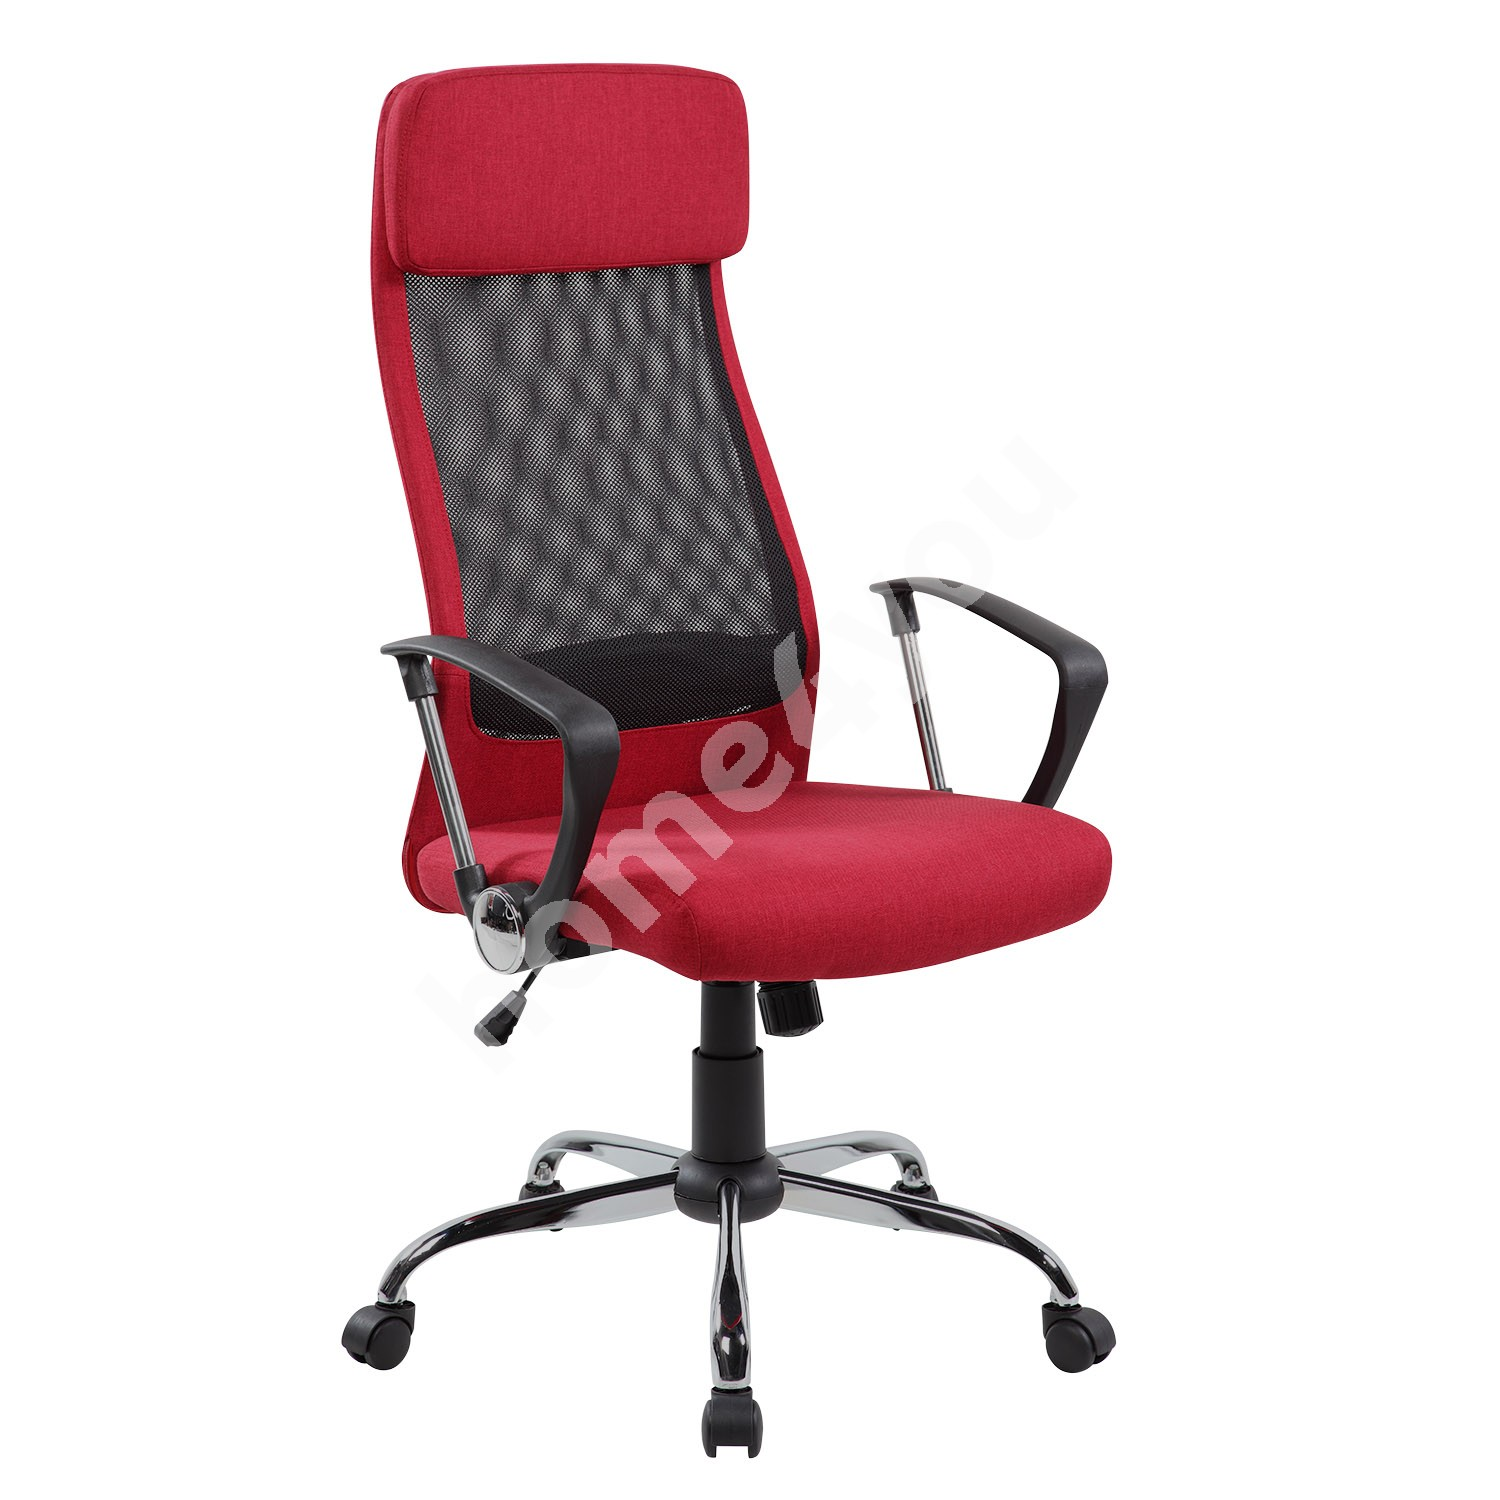 Task chair DARLA 62x63xH116-126cm, seat and back rest: fabric / mesh fabric, color: red